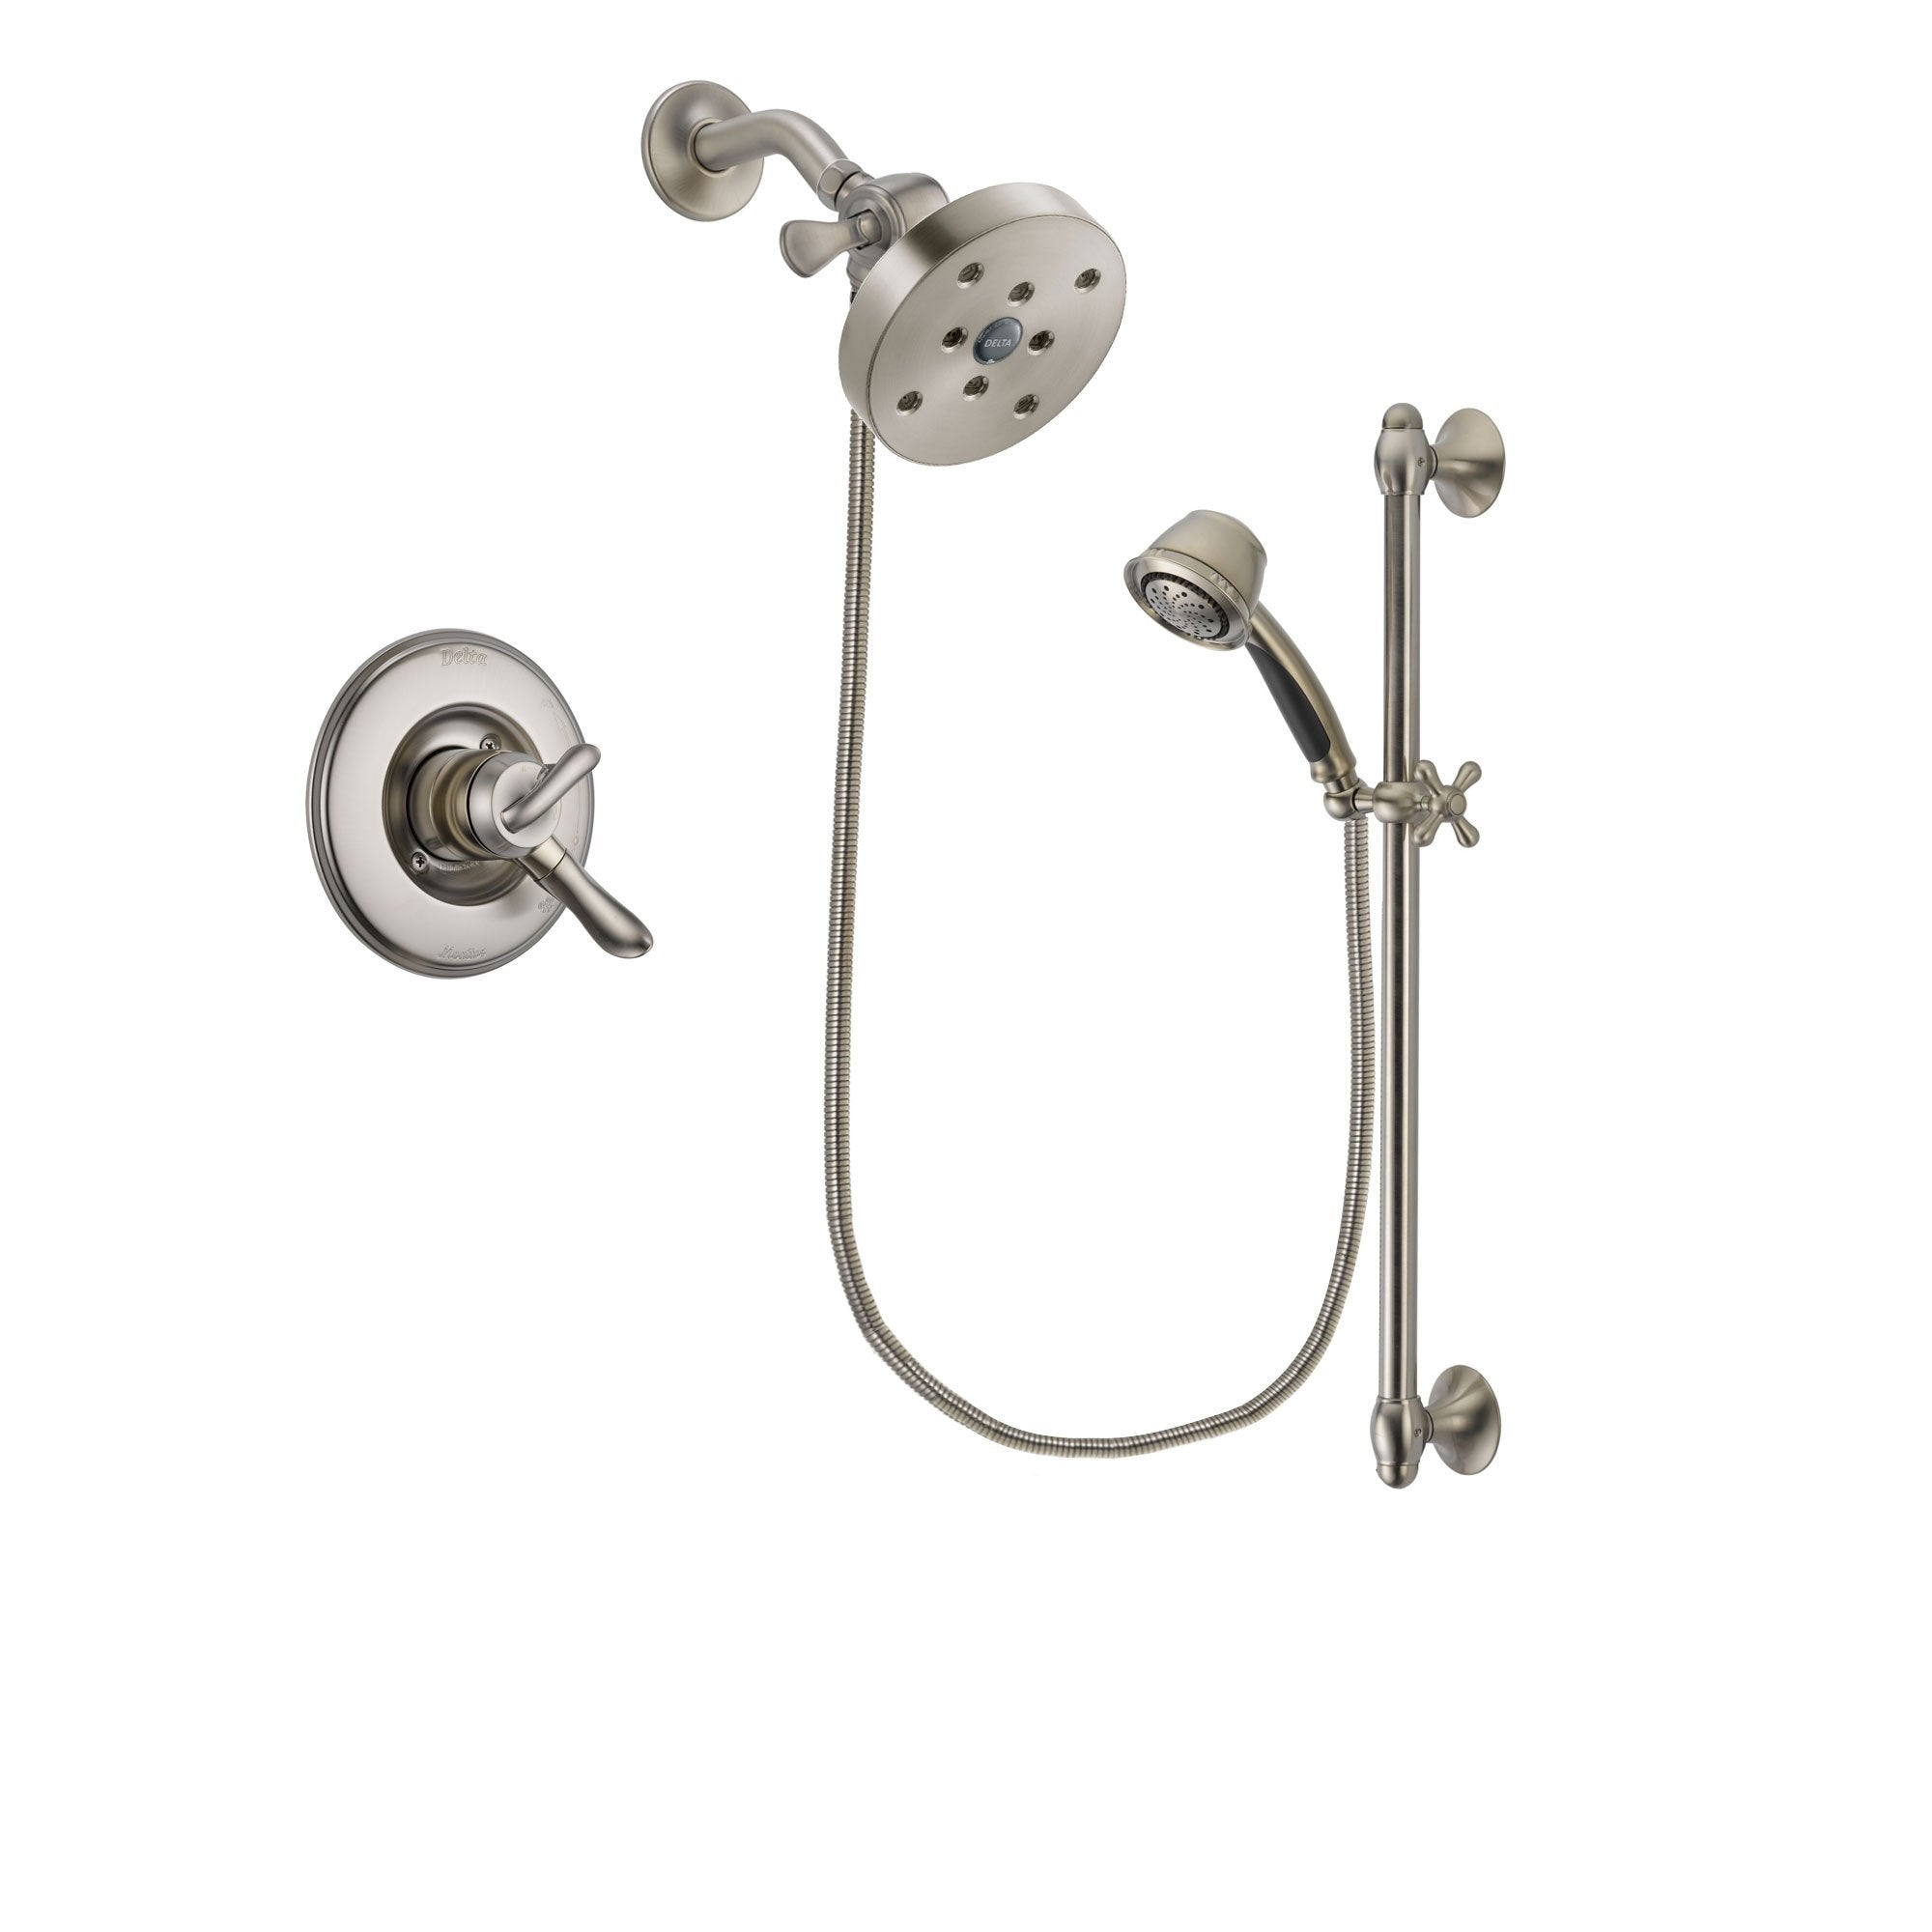 Delta Linden Stainless Steel Finish Shower Faucet System w/ Hand Spray DSP1374V